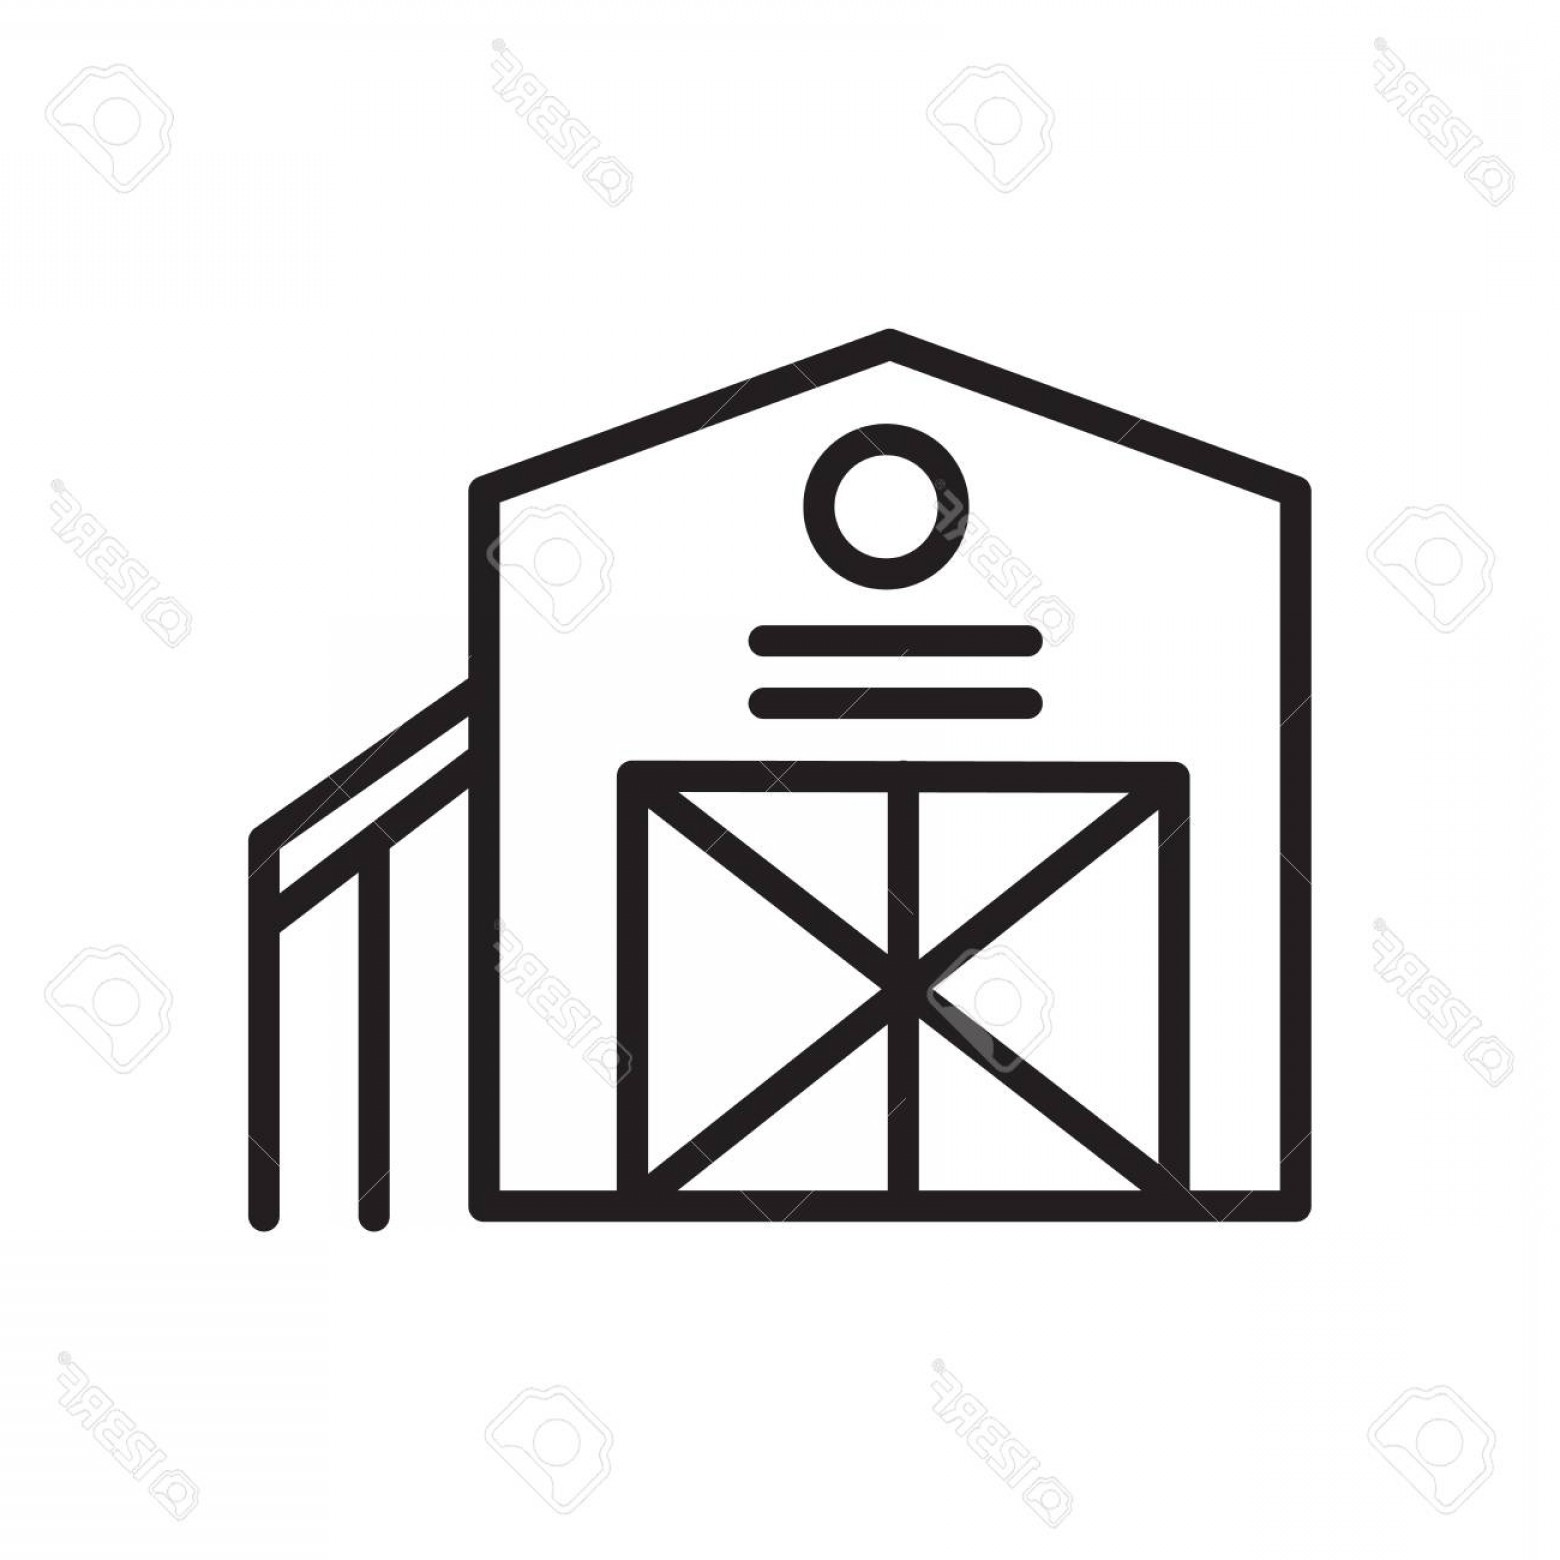 Barn Outline Vector: Photostock Vector Barn Icon Vector Isolated On White Background Barn Transparent Sign Linear Symbol And Stroke Design